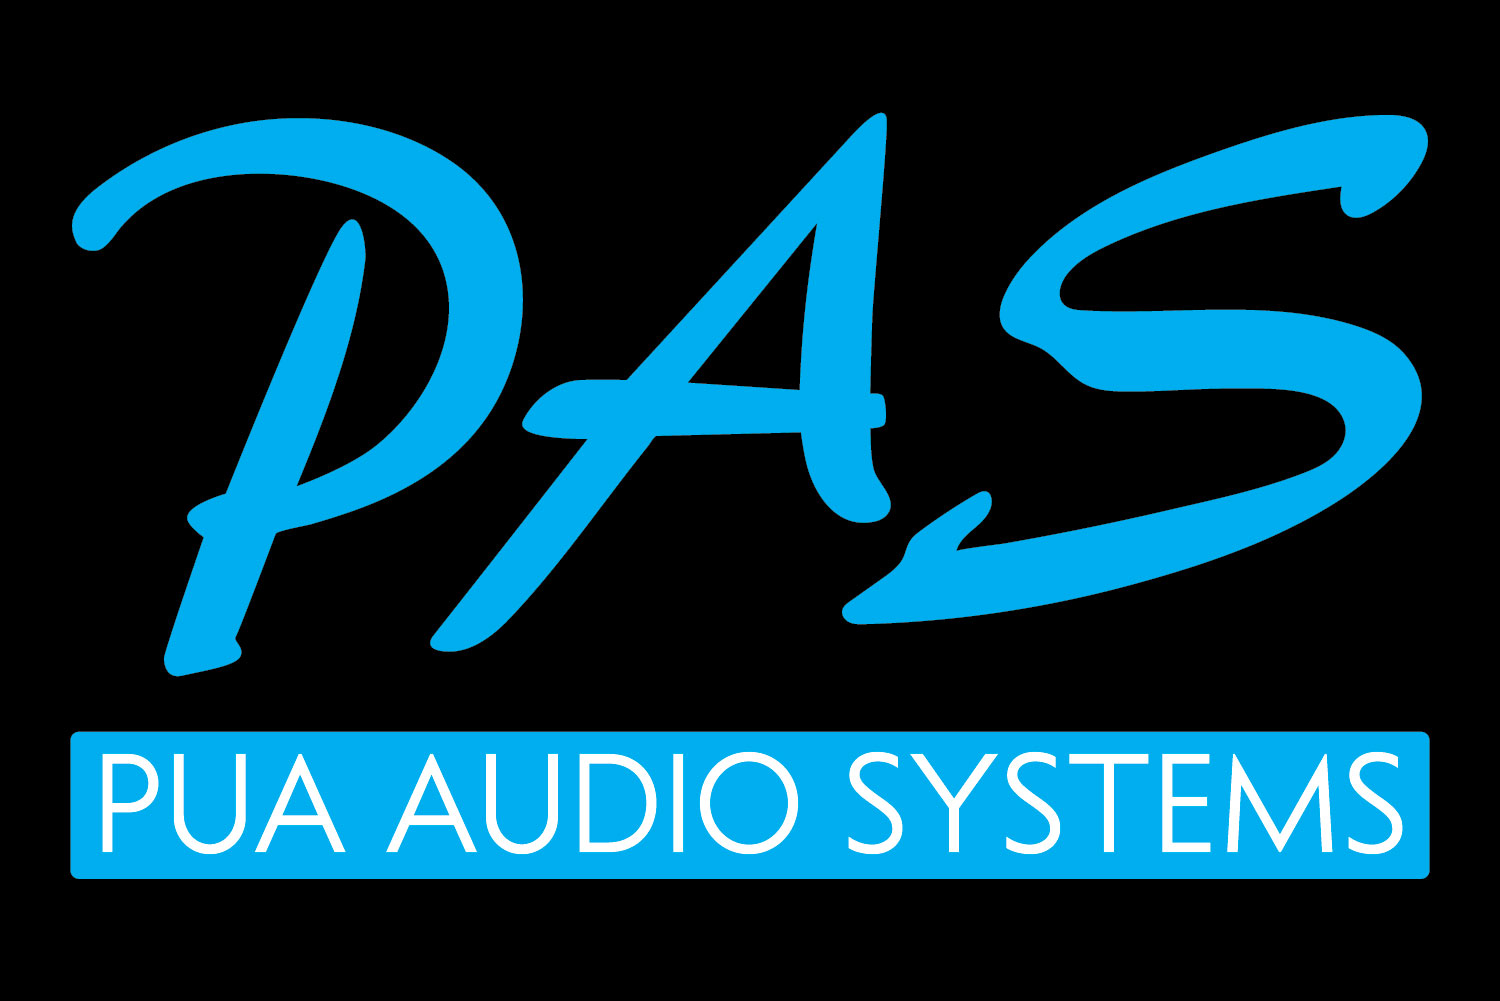 PUA-Audio-Systems-Logo-LadyLexProductions.jpg